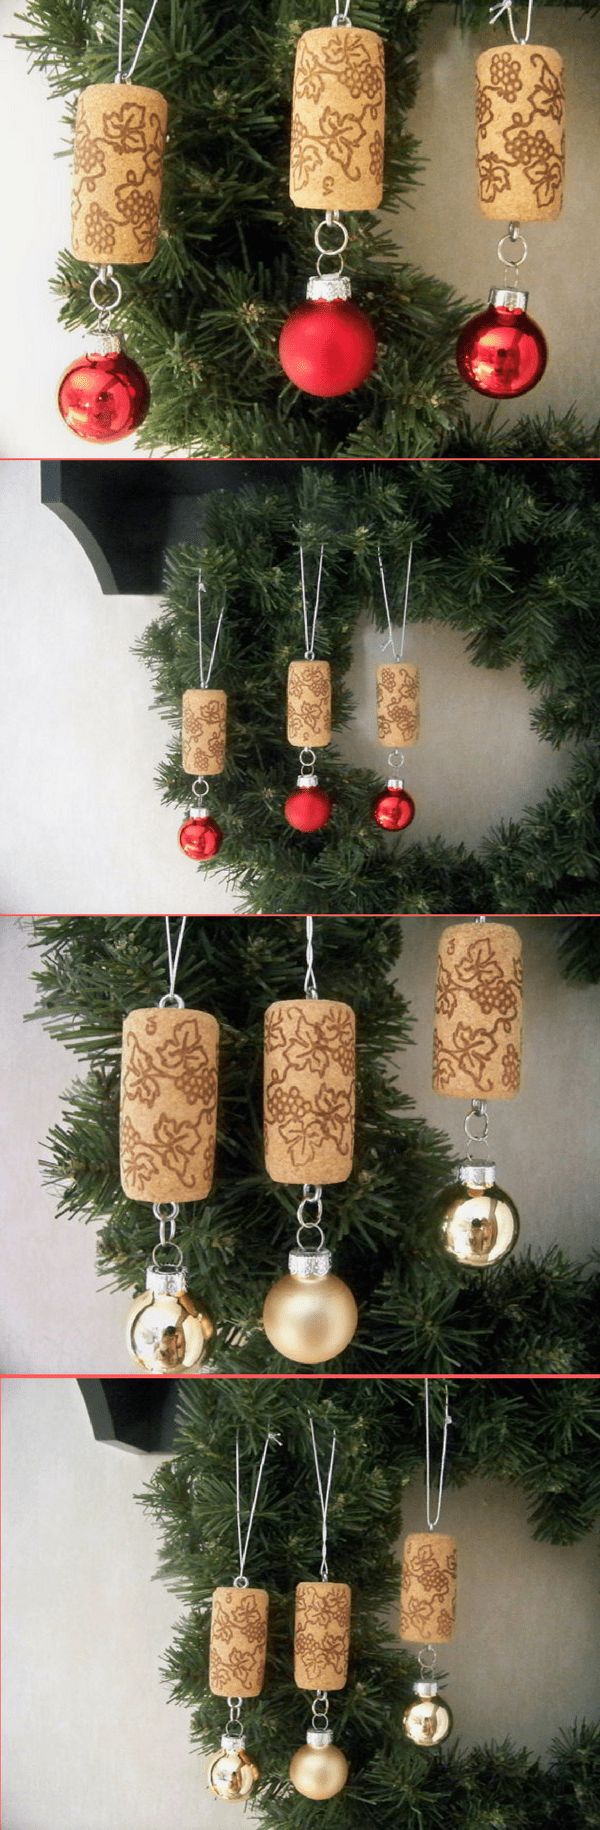 Top500 d co de no l fabriquer et faire soi m me m ga guide - Decoration de noel a faire ...